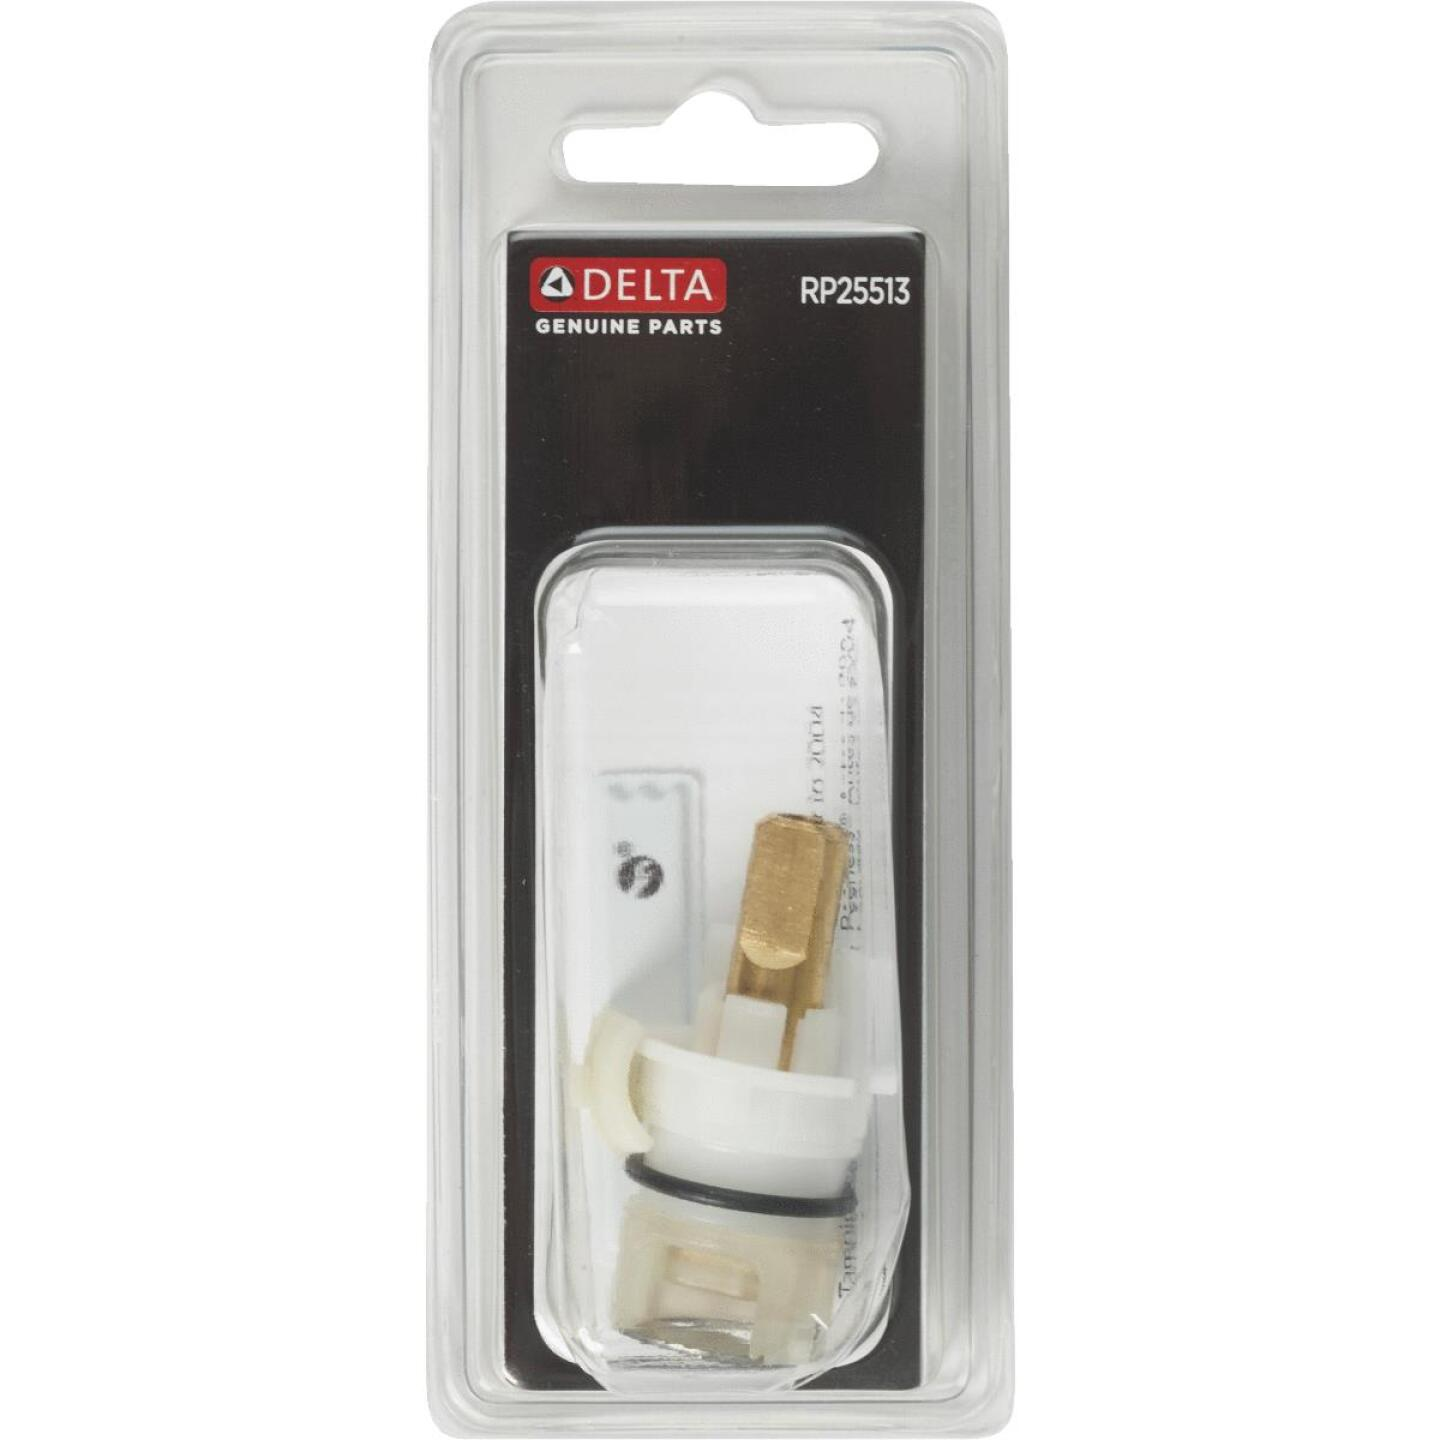 Delta Stem Assembly Two-Handle Faucet Cartridge Image 2